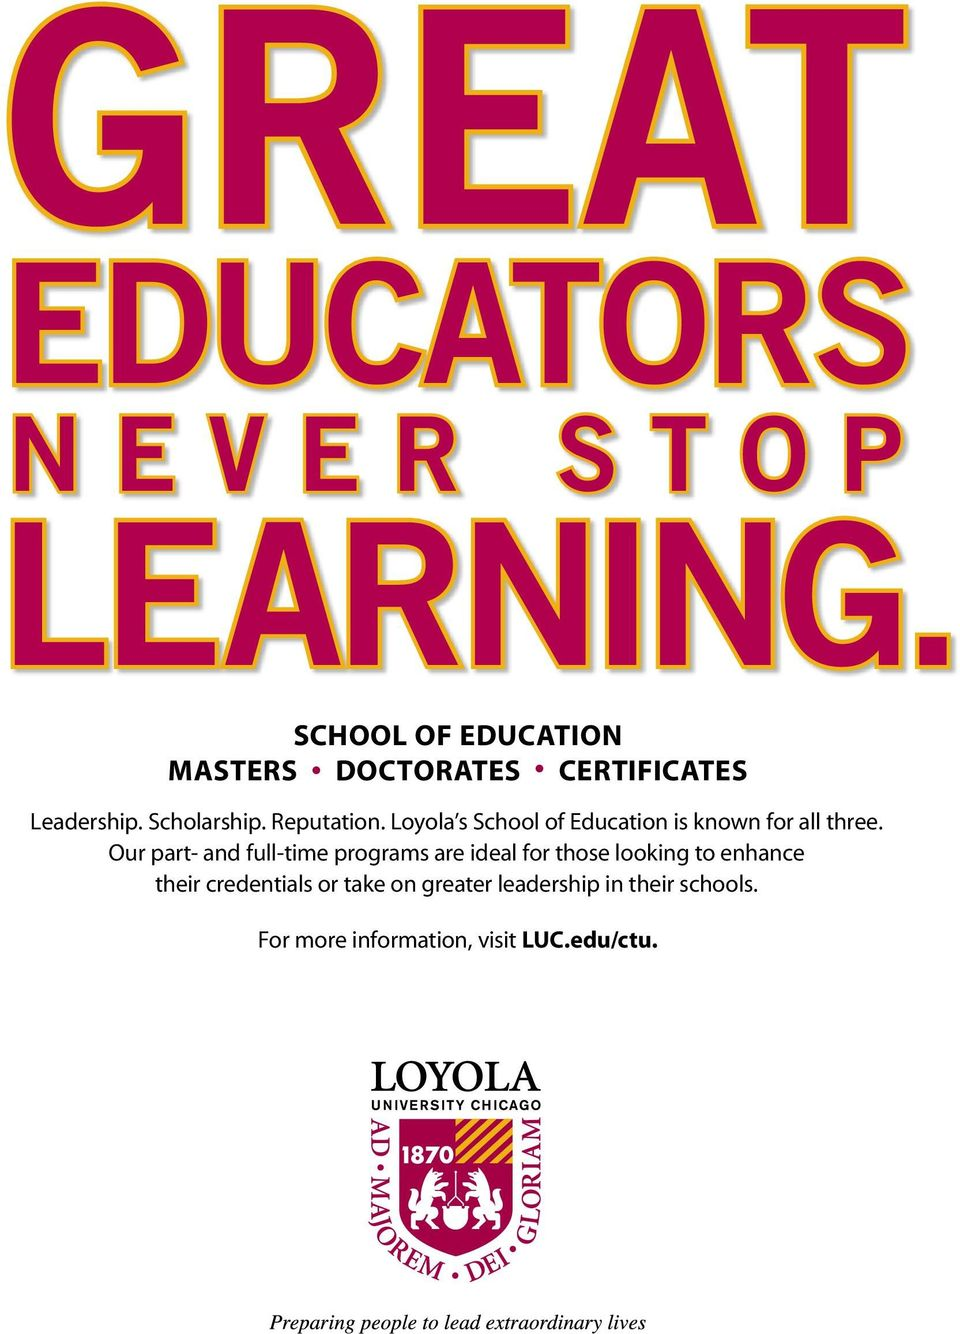 Loyola s School of Education is known for all three.